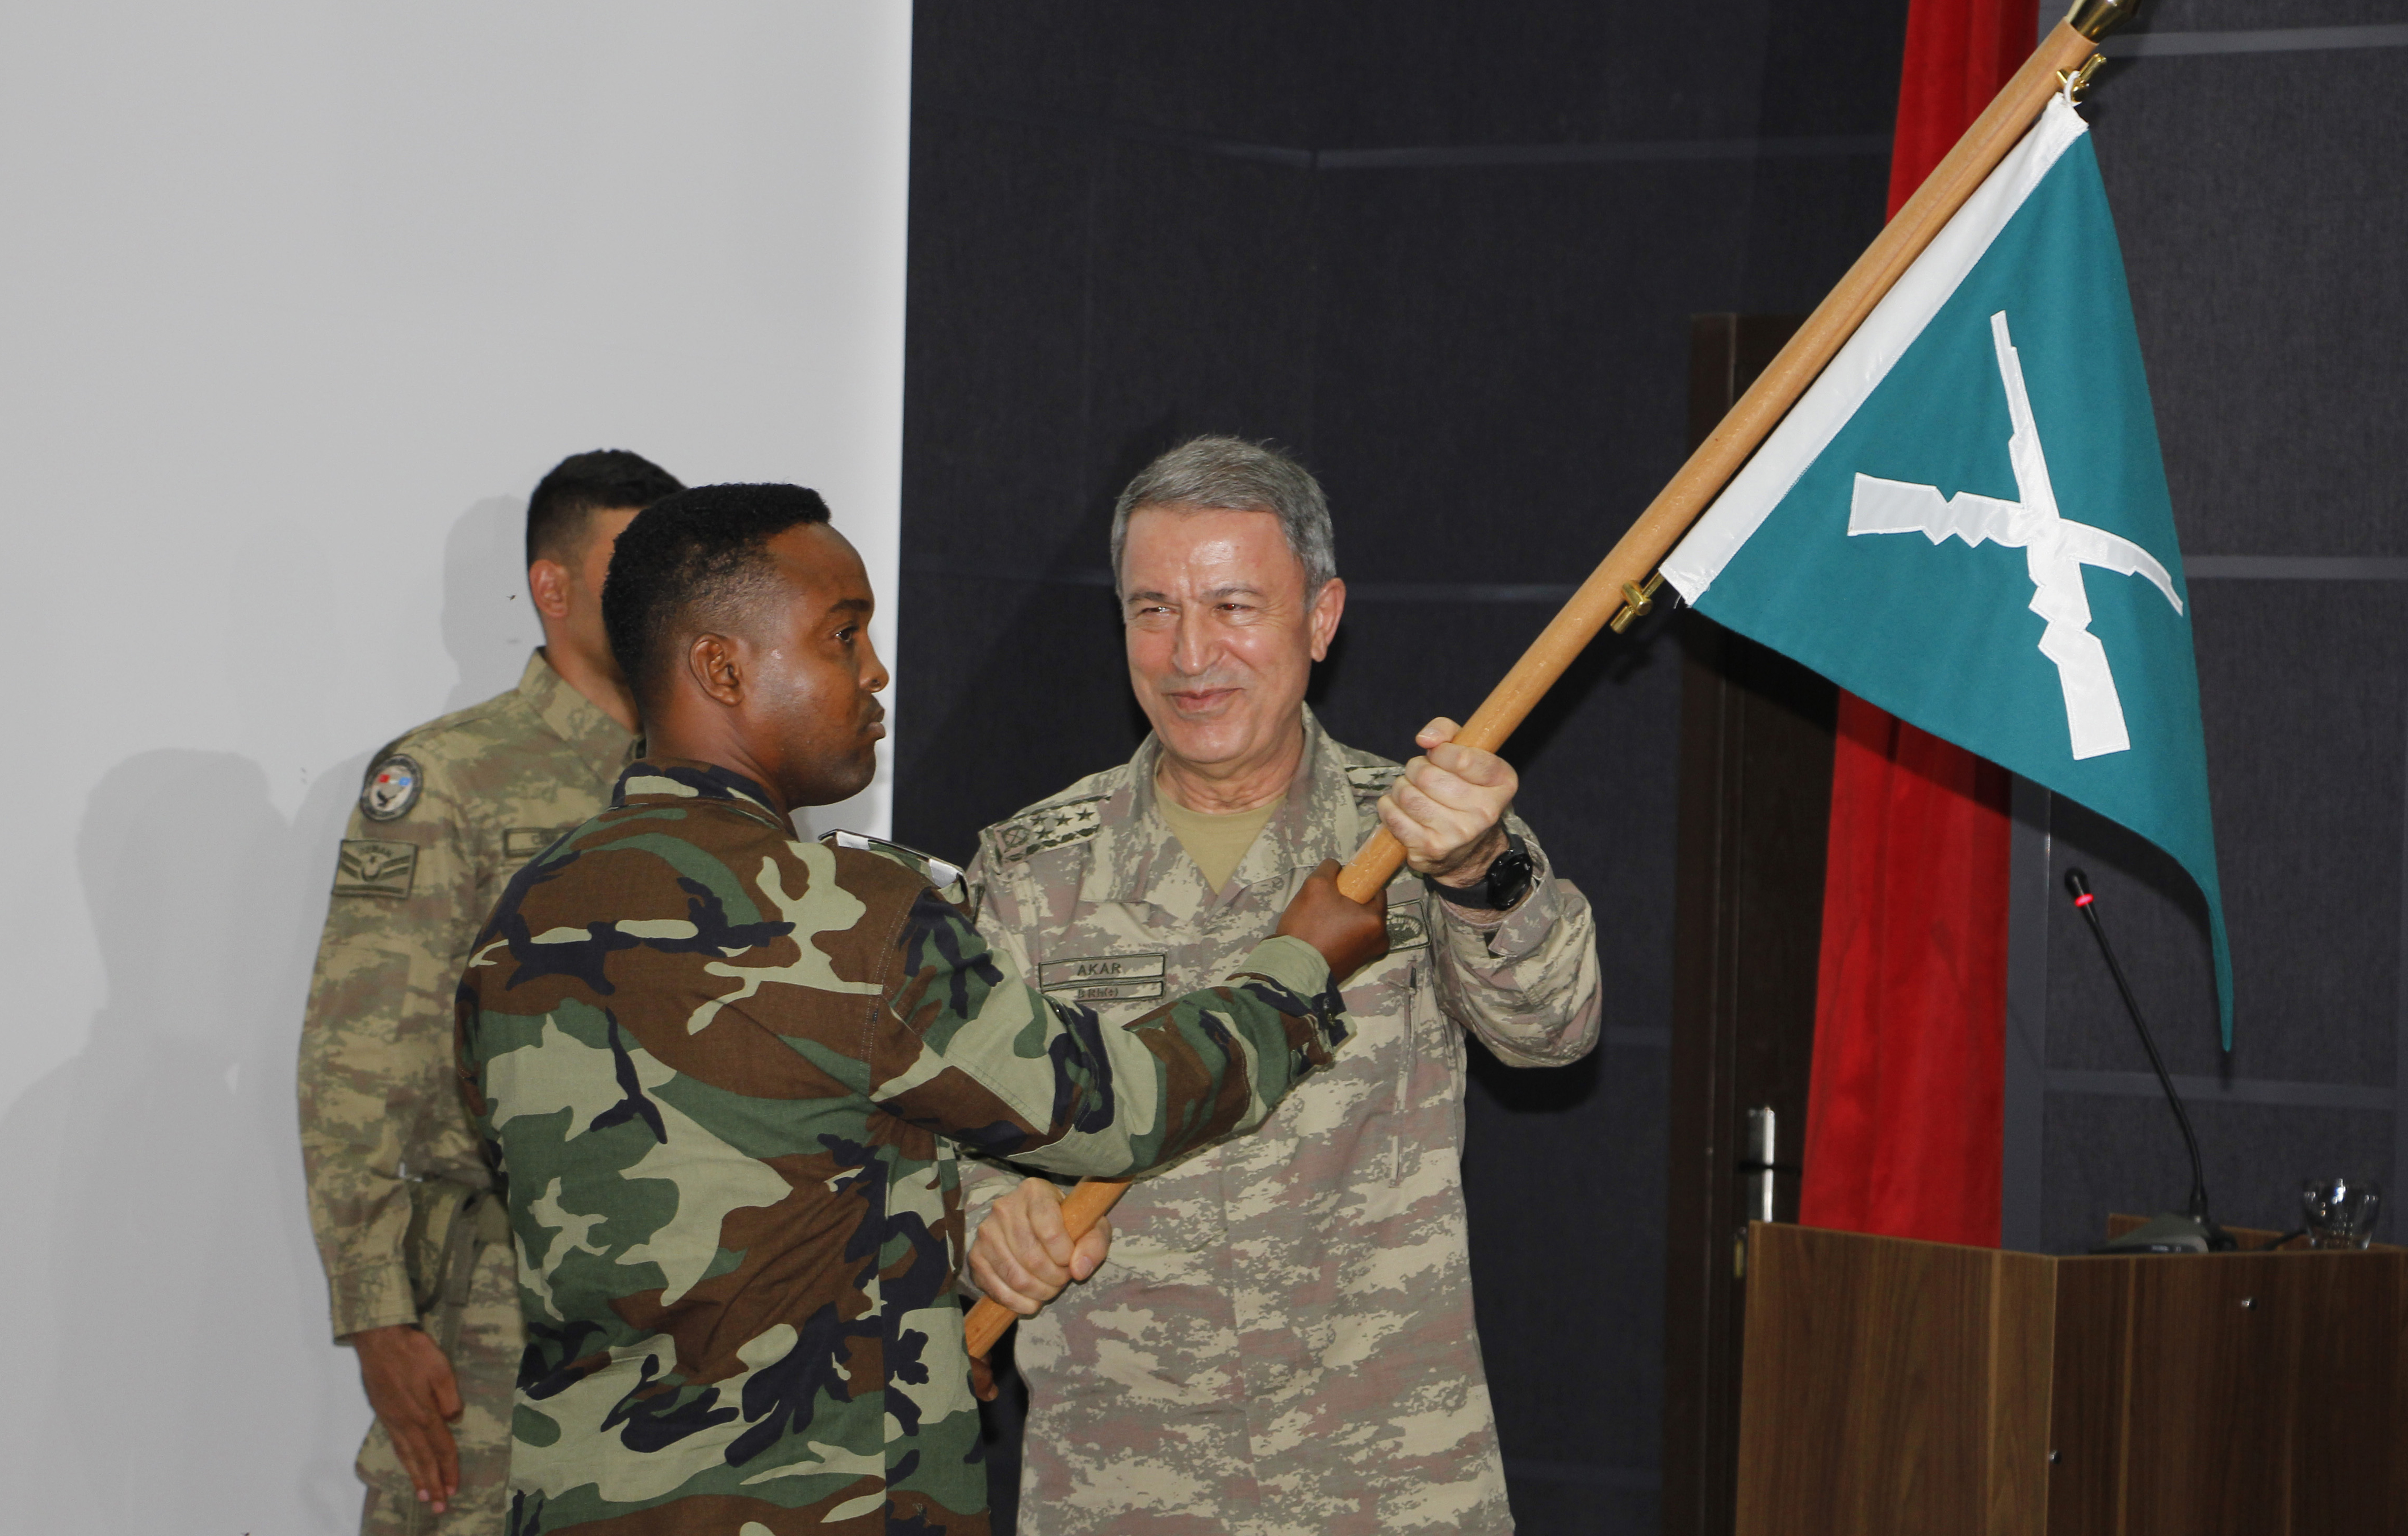 Turkish Chief of Staff General Hulusi Akar, right, hands a flag to a Somali soldier at the new Turkey-Somali military training center in  Mogadishu, Sept. 30, 2017.